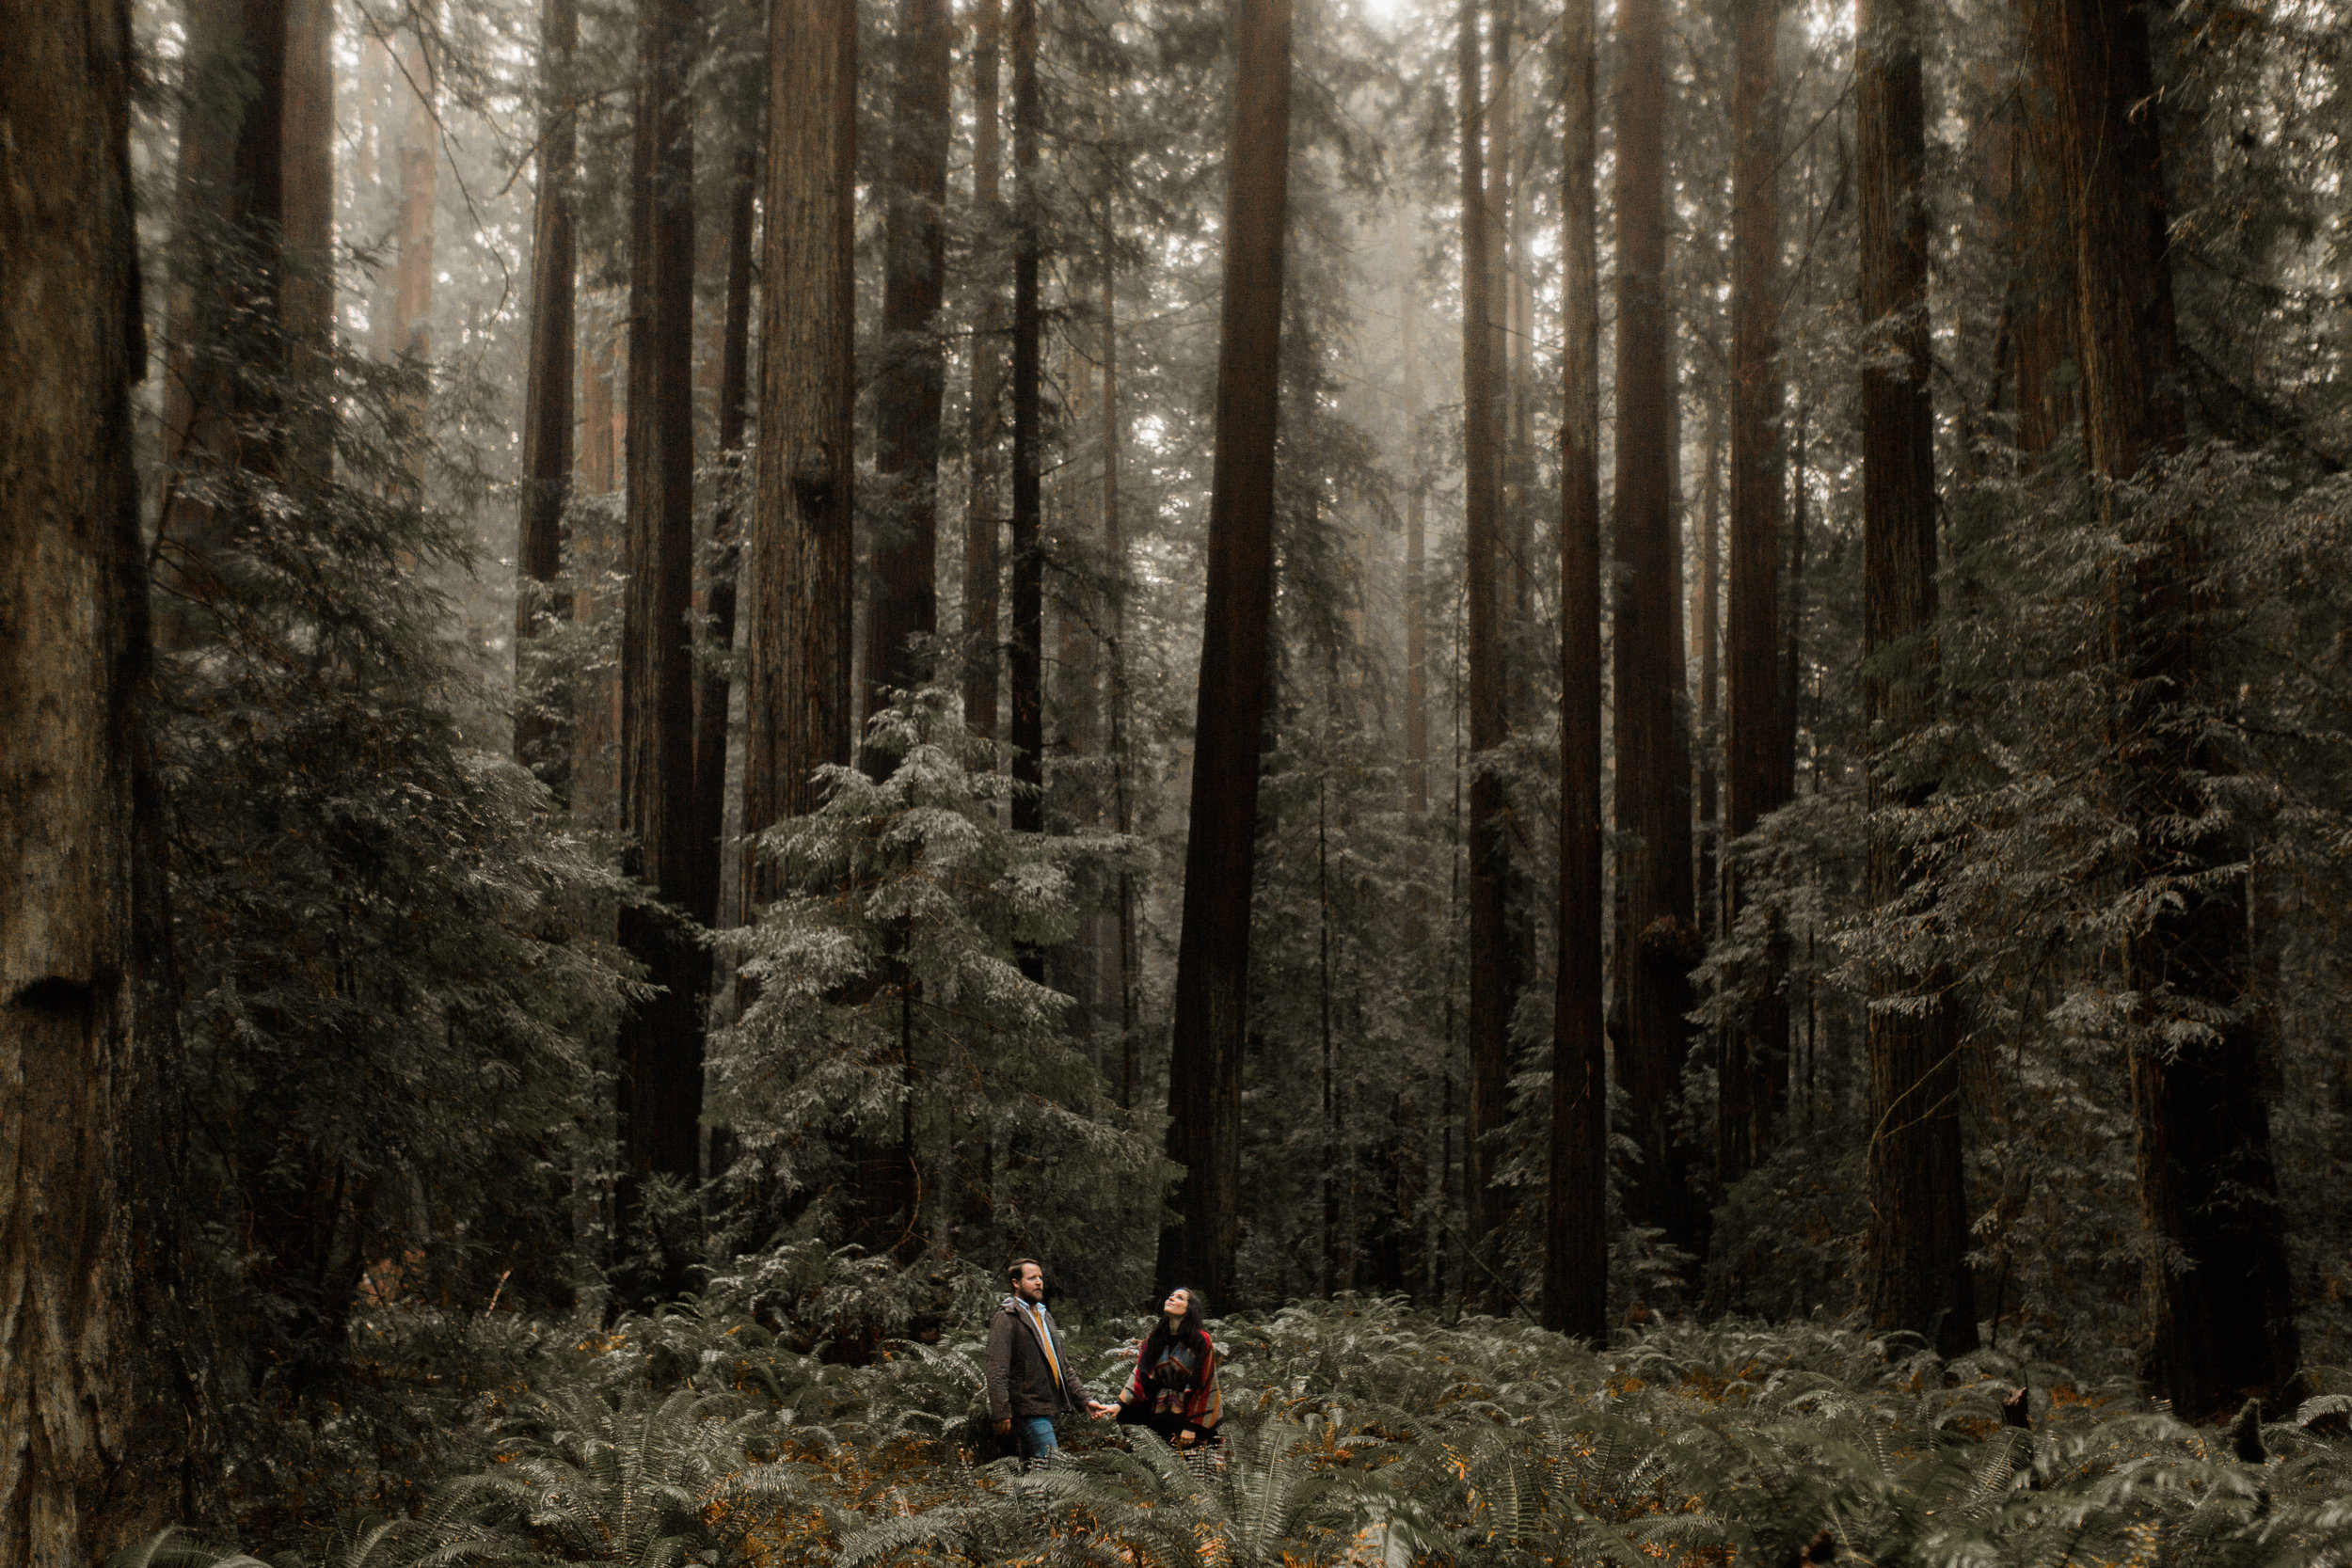 nicole-daacke-photography-redwoods-national-park-forest-rainy-foggy-adventure-engagement-session-humboldt-county-old-growth-redwood-tree-elopement-intimate-wedding-photographer-24.jpg